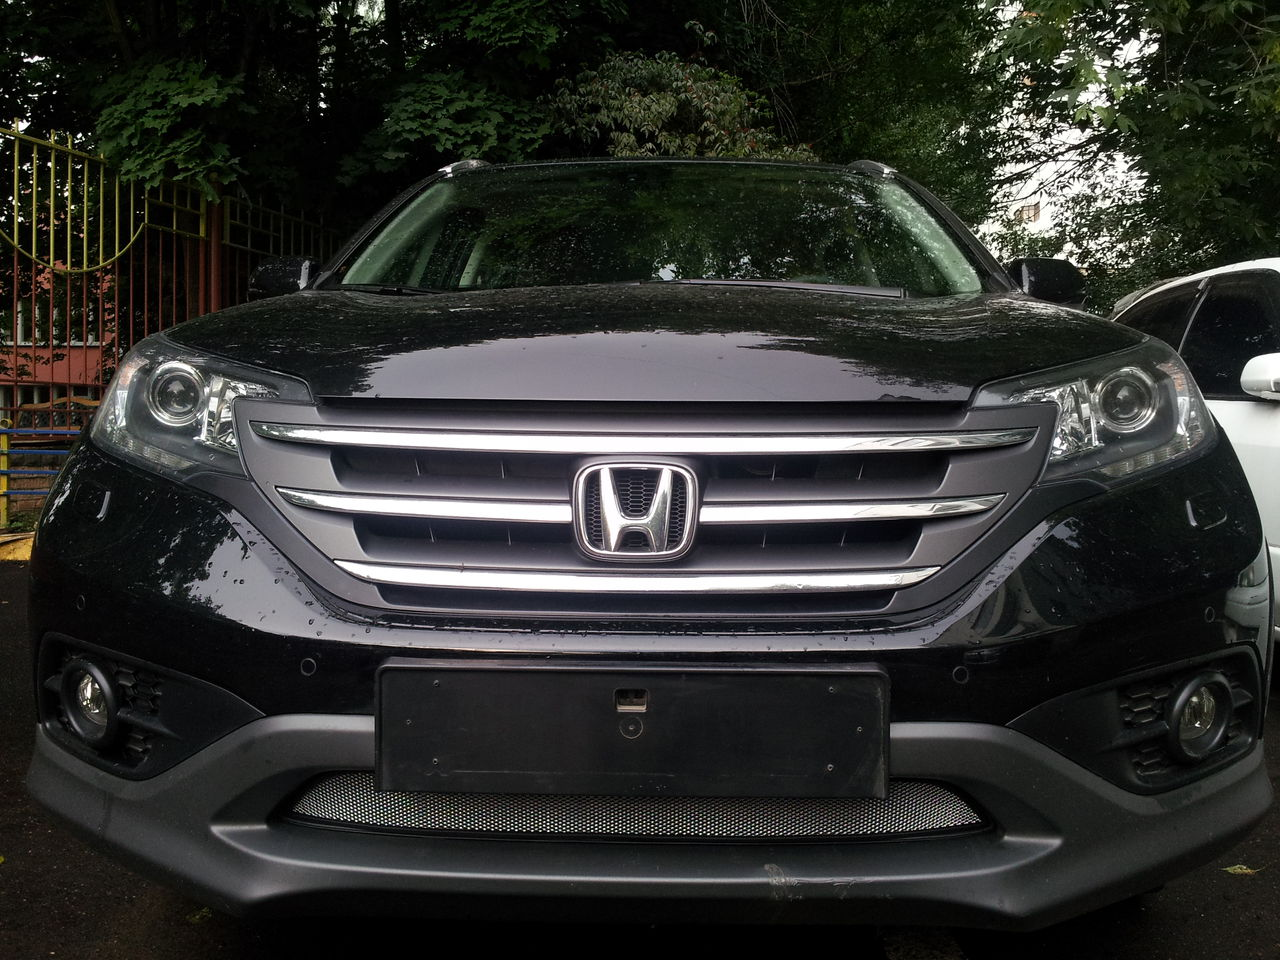 Защита радиатора Honda CR-V IV 2012- 2.0 chrome